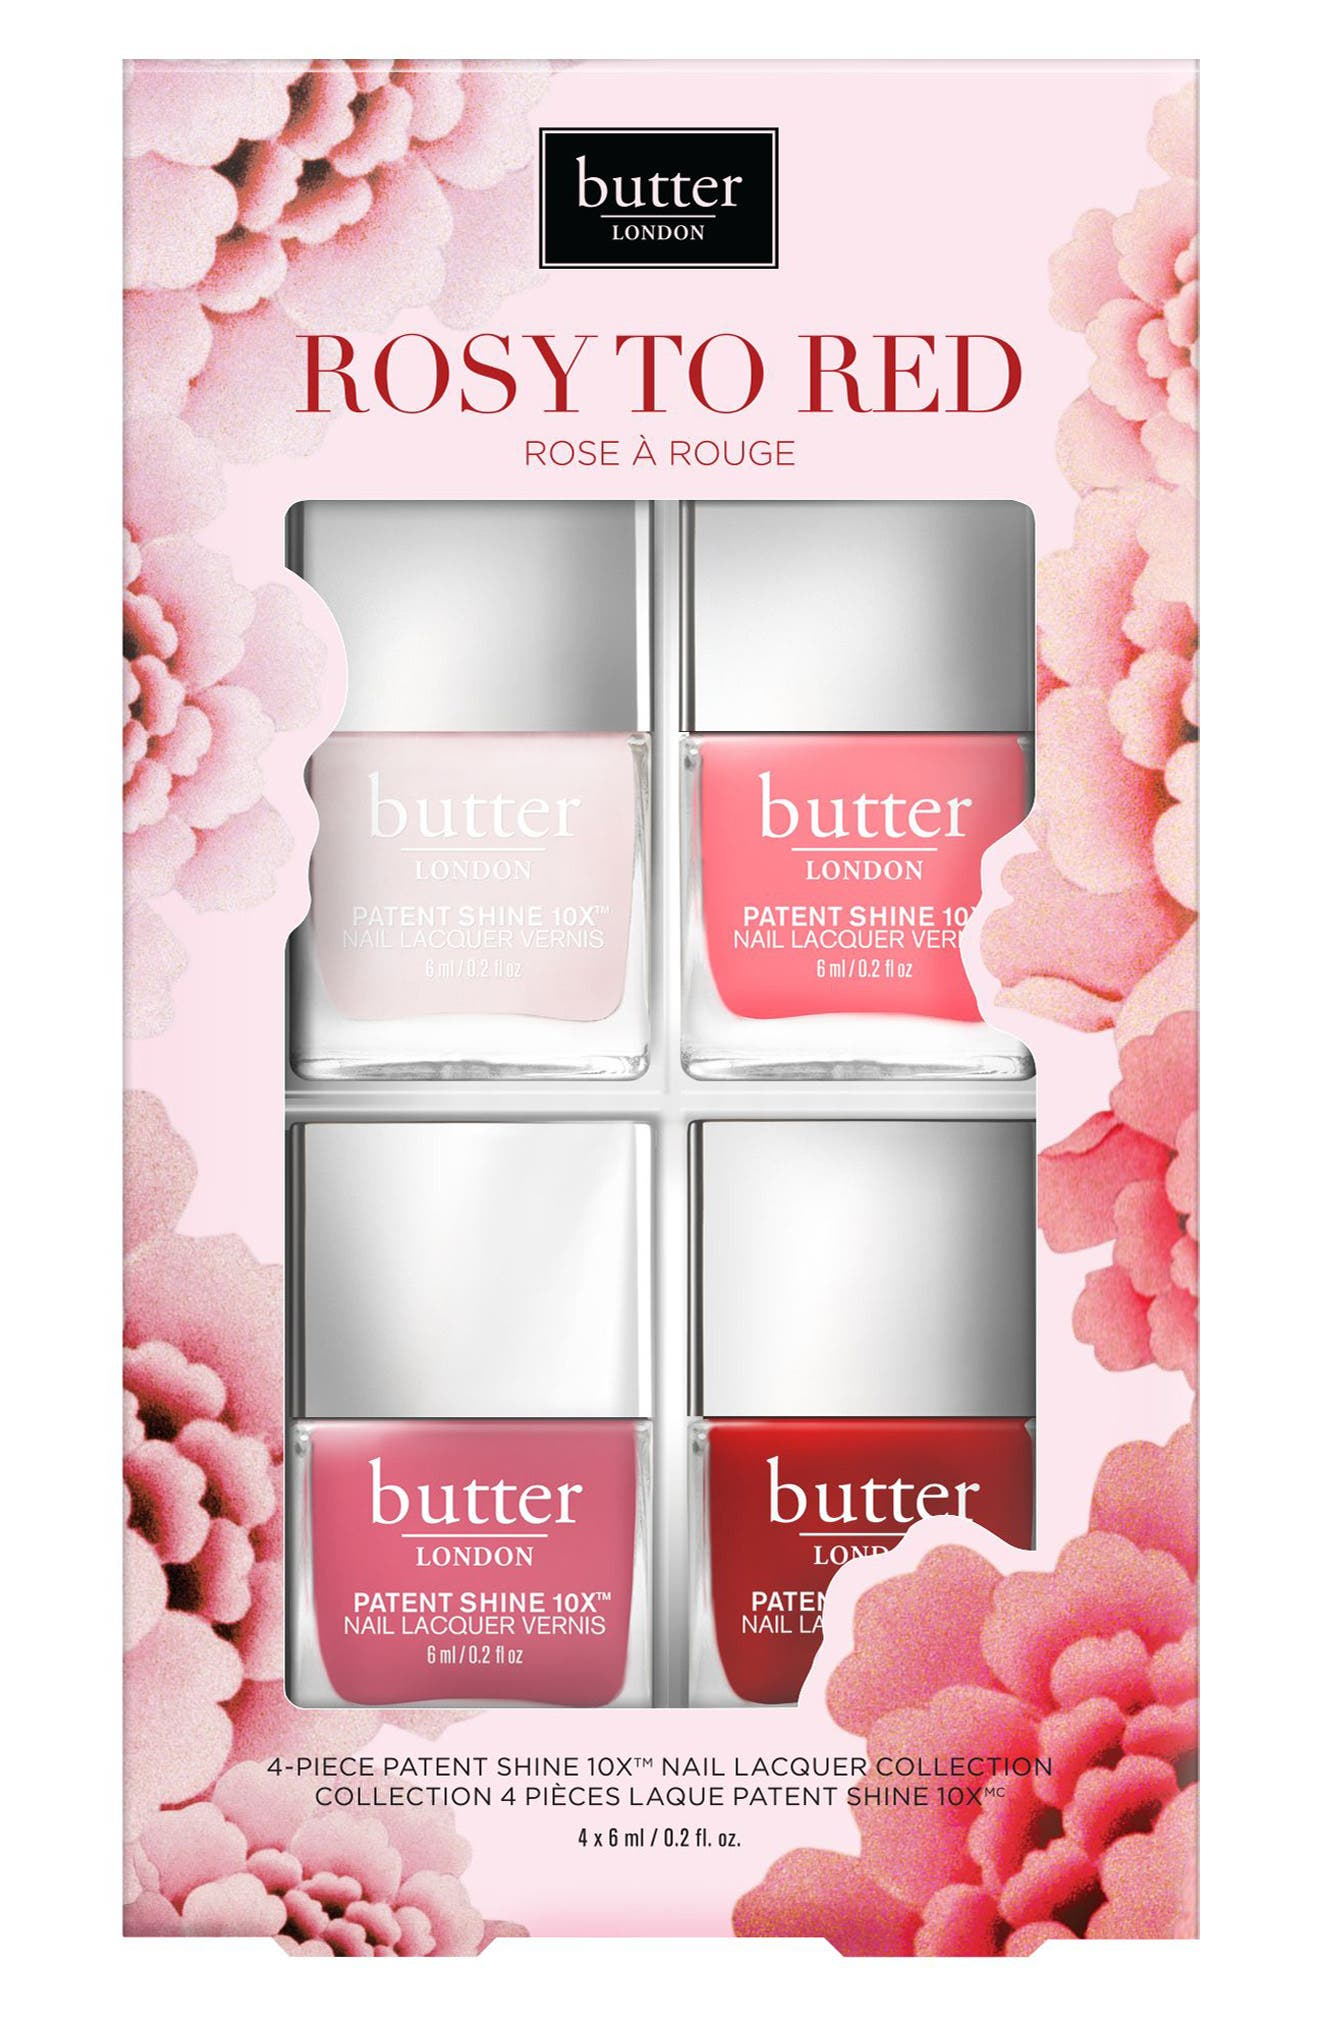 Alternate Image 1 Selected - butter LONDON Rosy to Red Patent Shine 10x™ Nail Lacquer Set (Limited Edition) (Nordstrom Exclusive)